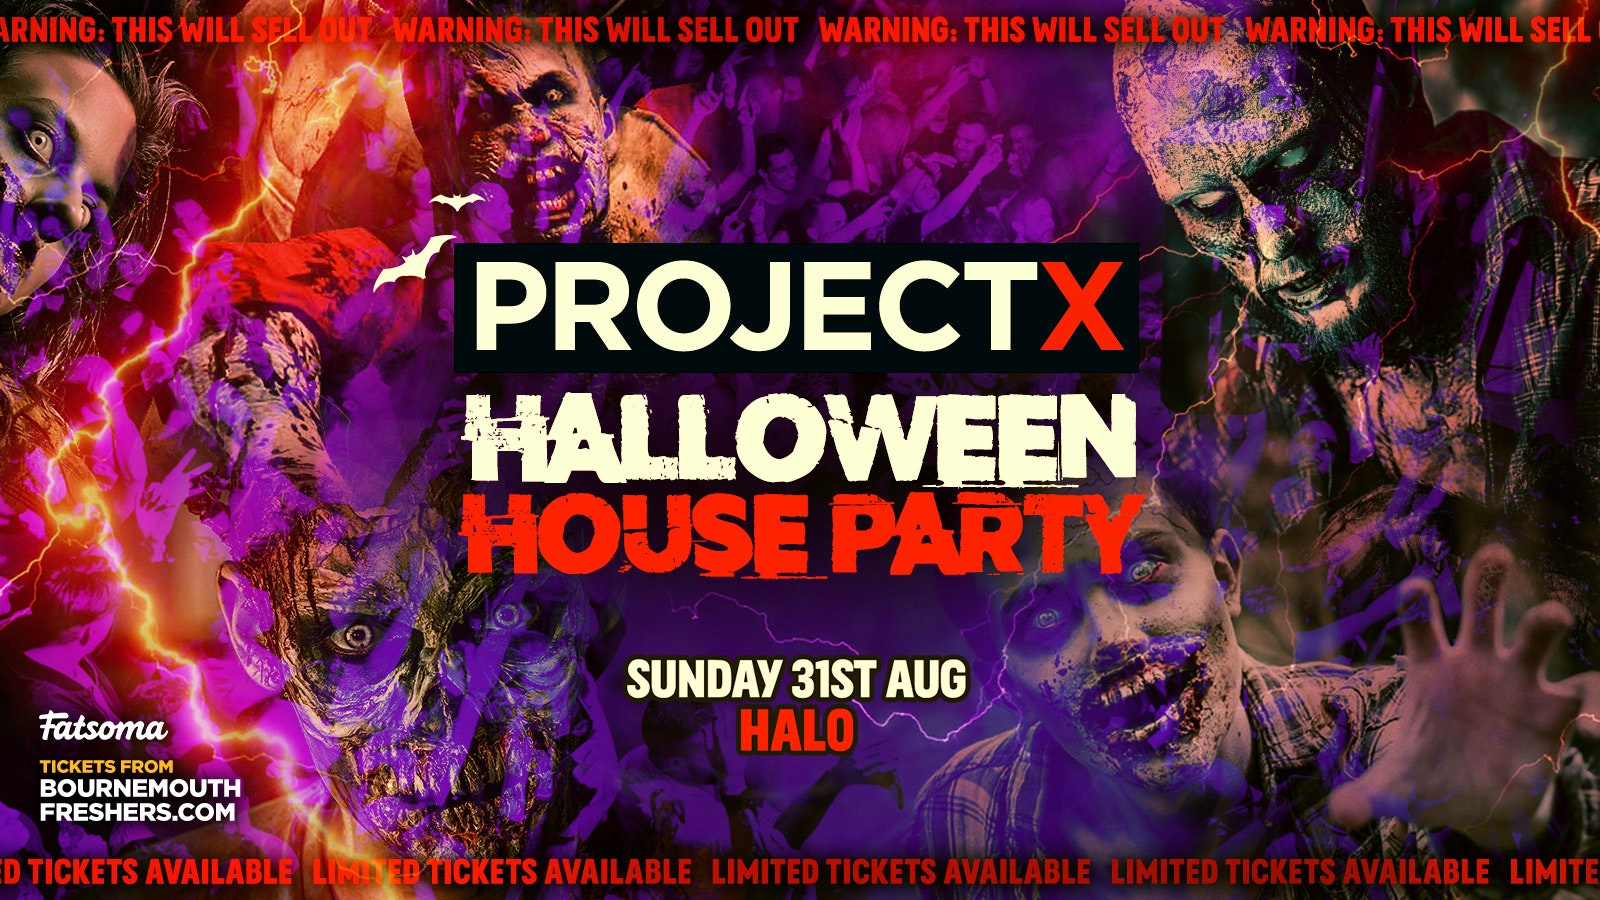 Project X Halloween House Party 2021 – The BIGGEST American Themed House Party This Year | Bournemouth Freshers 2021